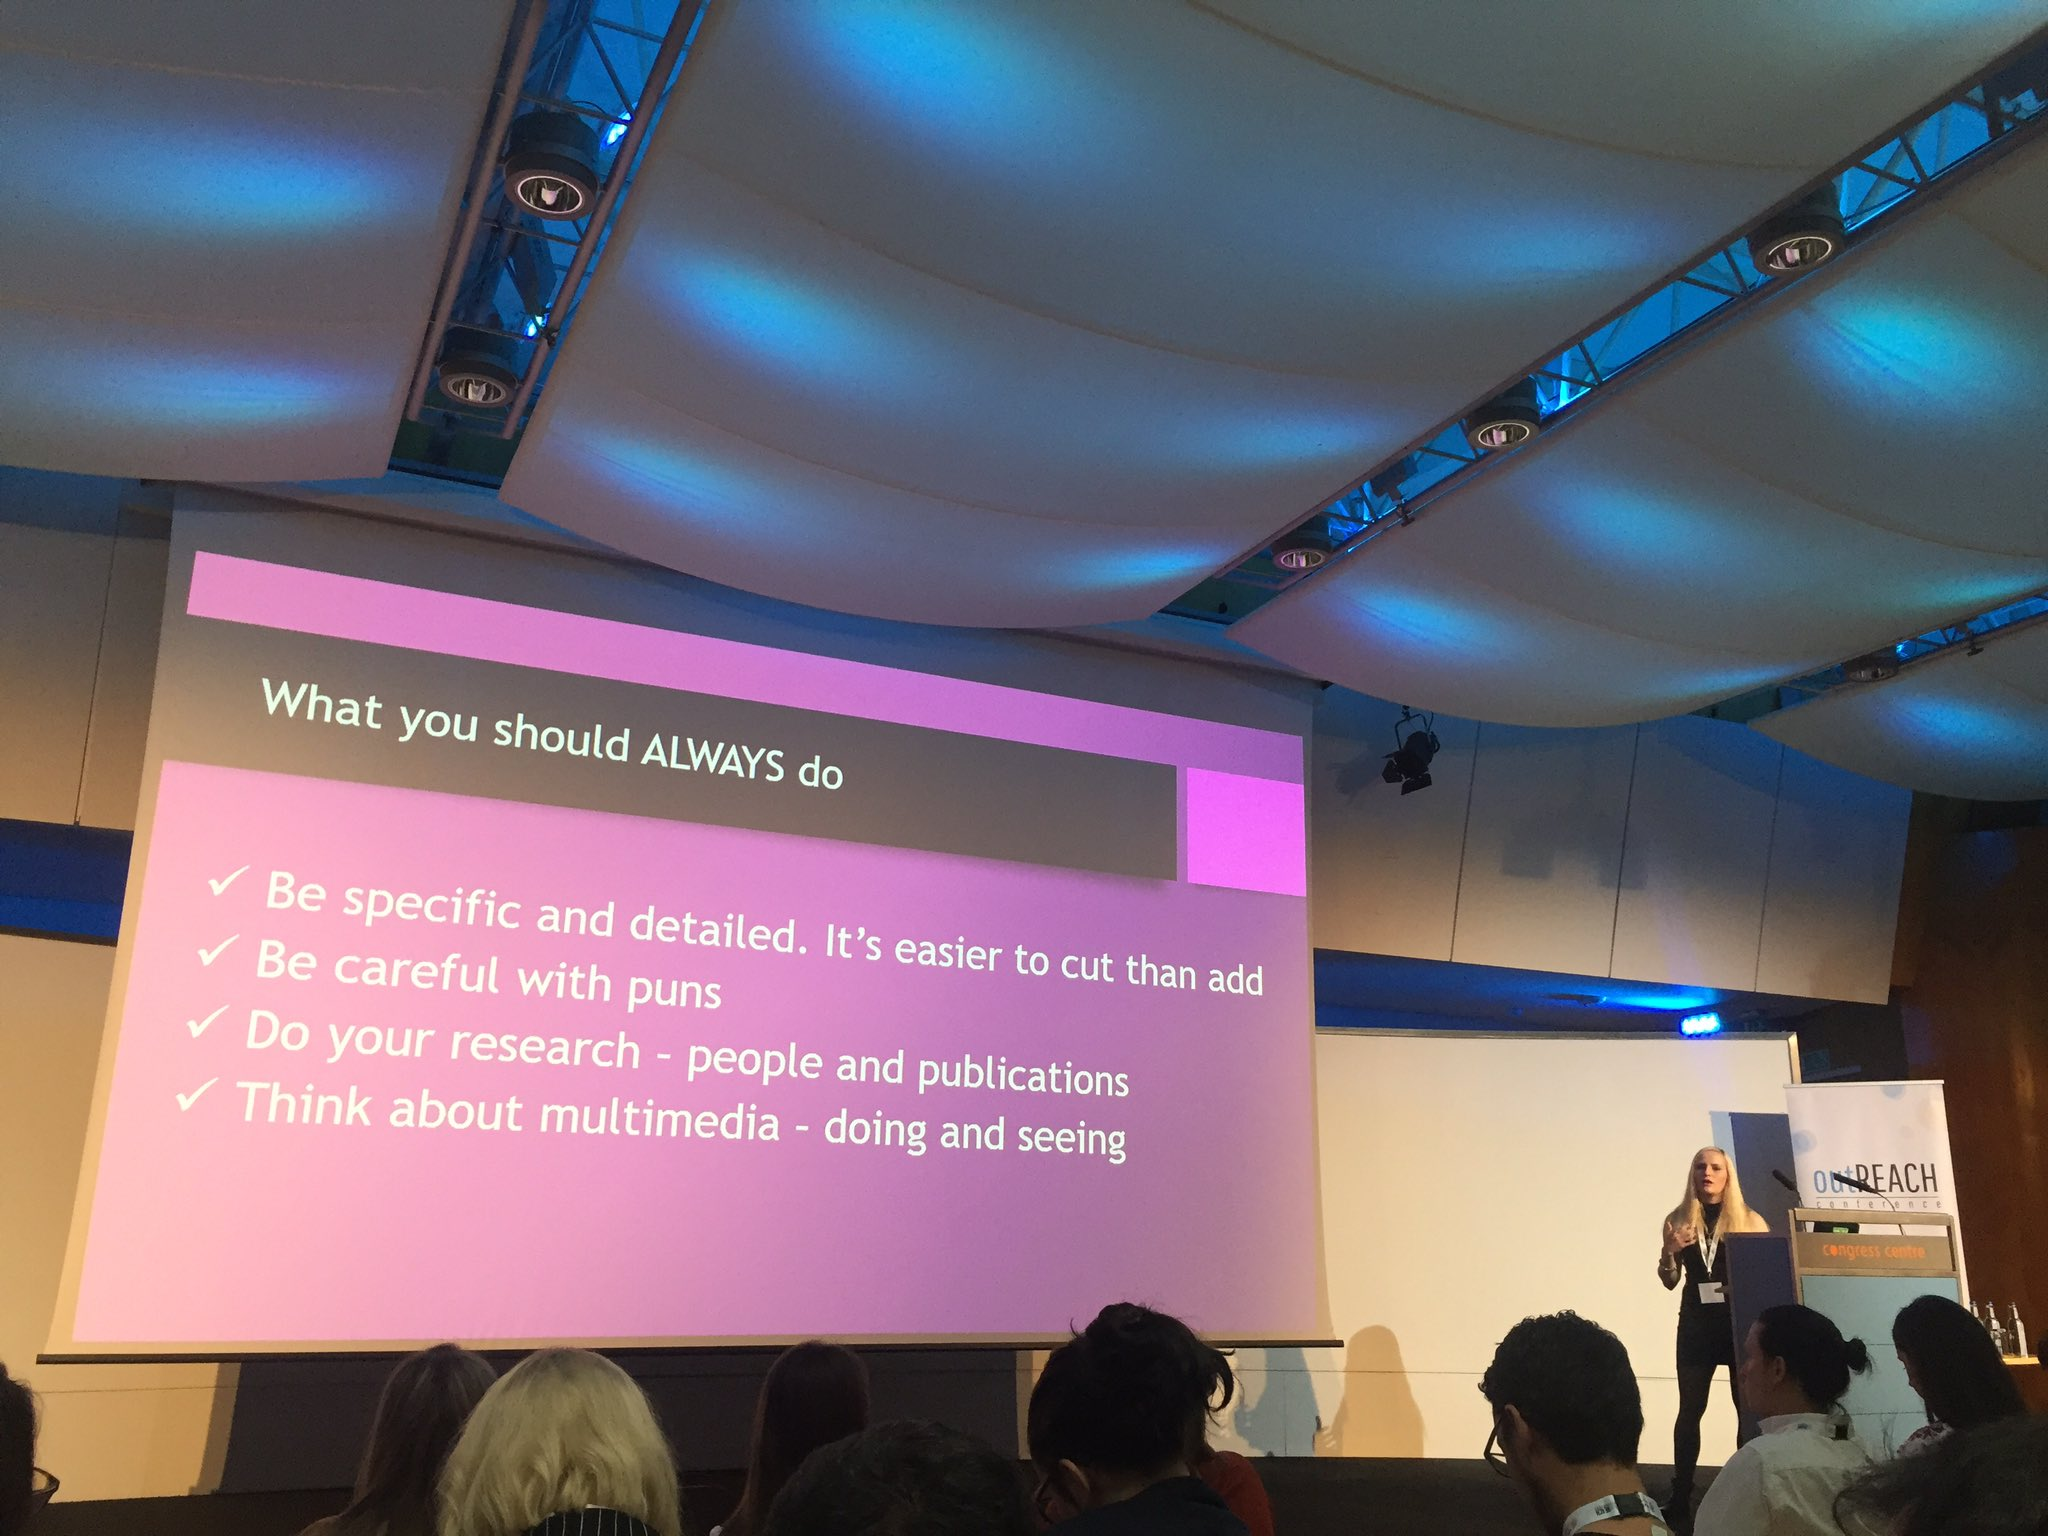 Speaking at Verve Search's outREACH conference in London, on the dos and don'ts of pitching to journalists